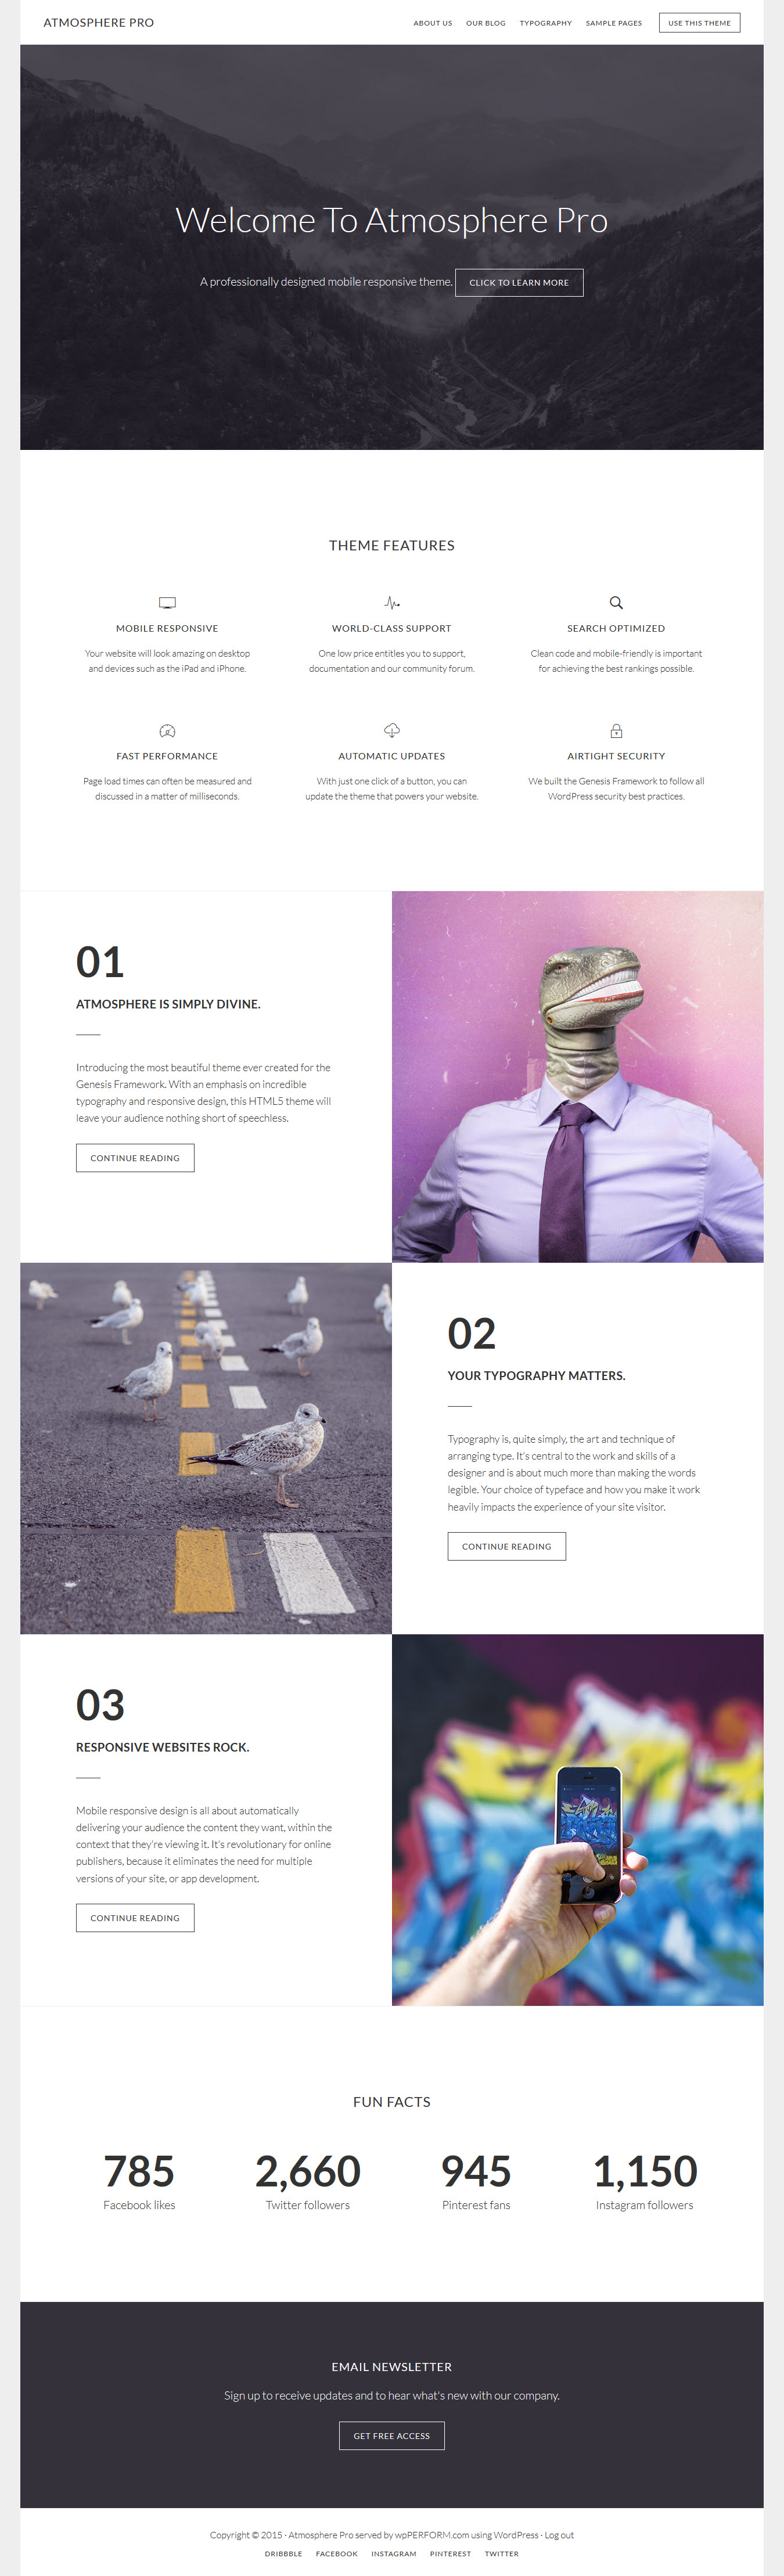 Atmosphere Pro By Studiopress Wpperform Com